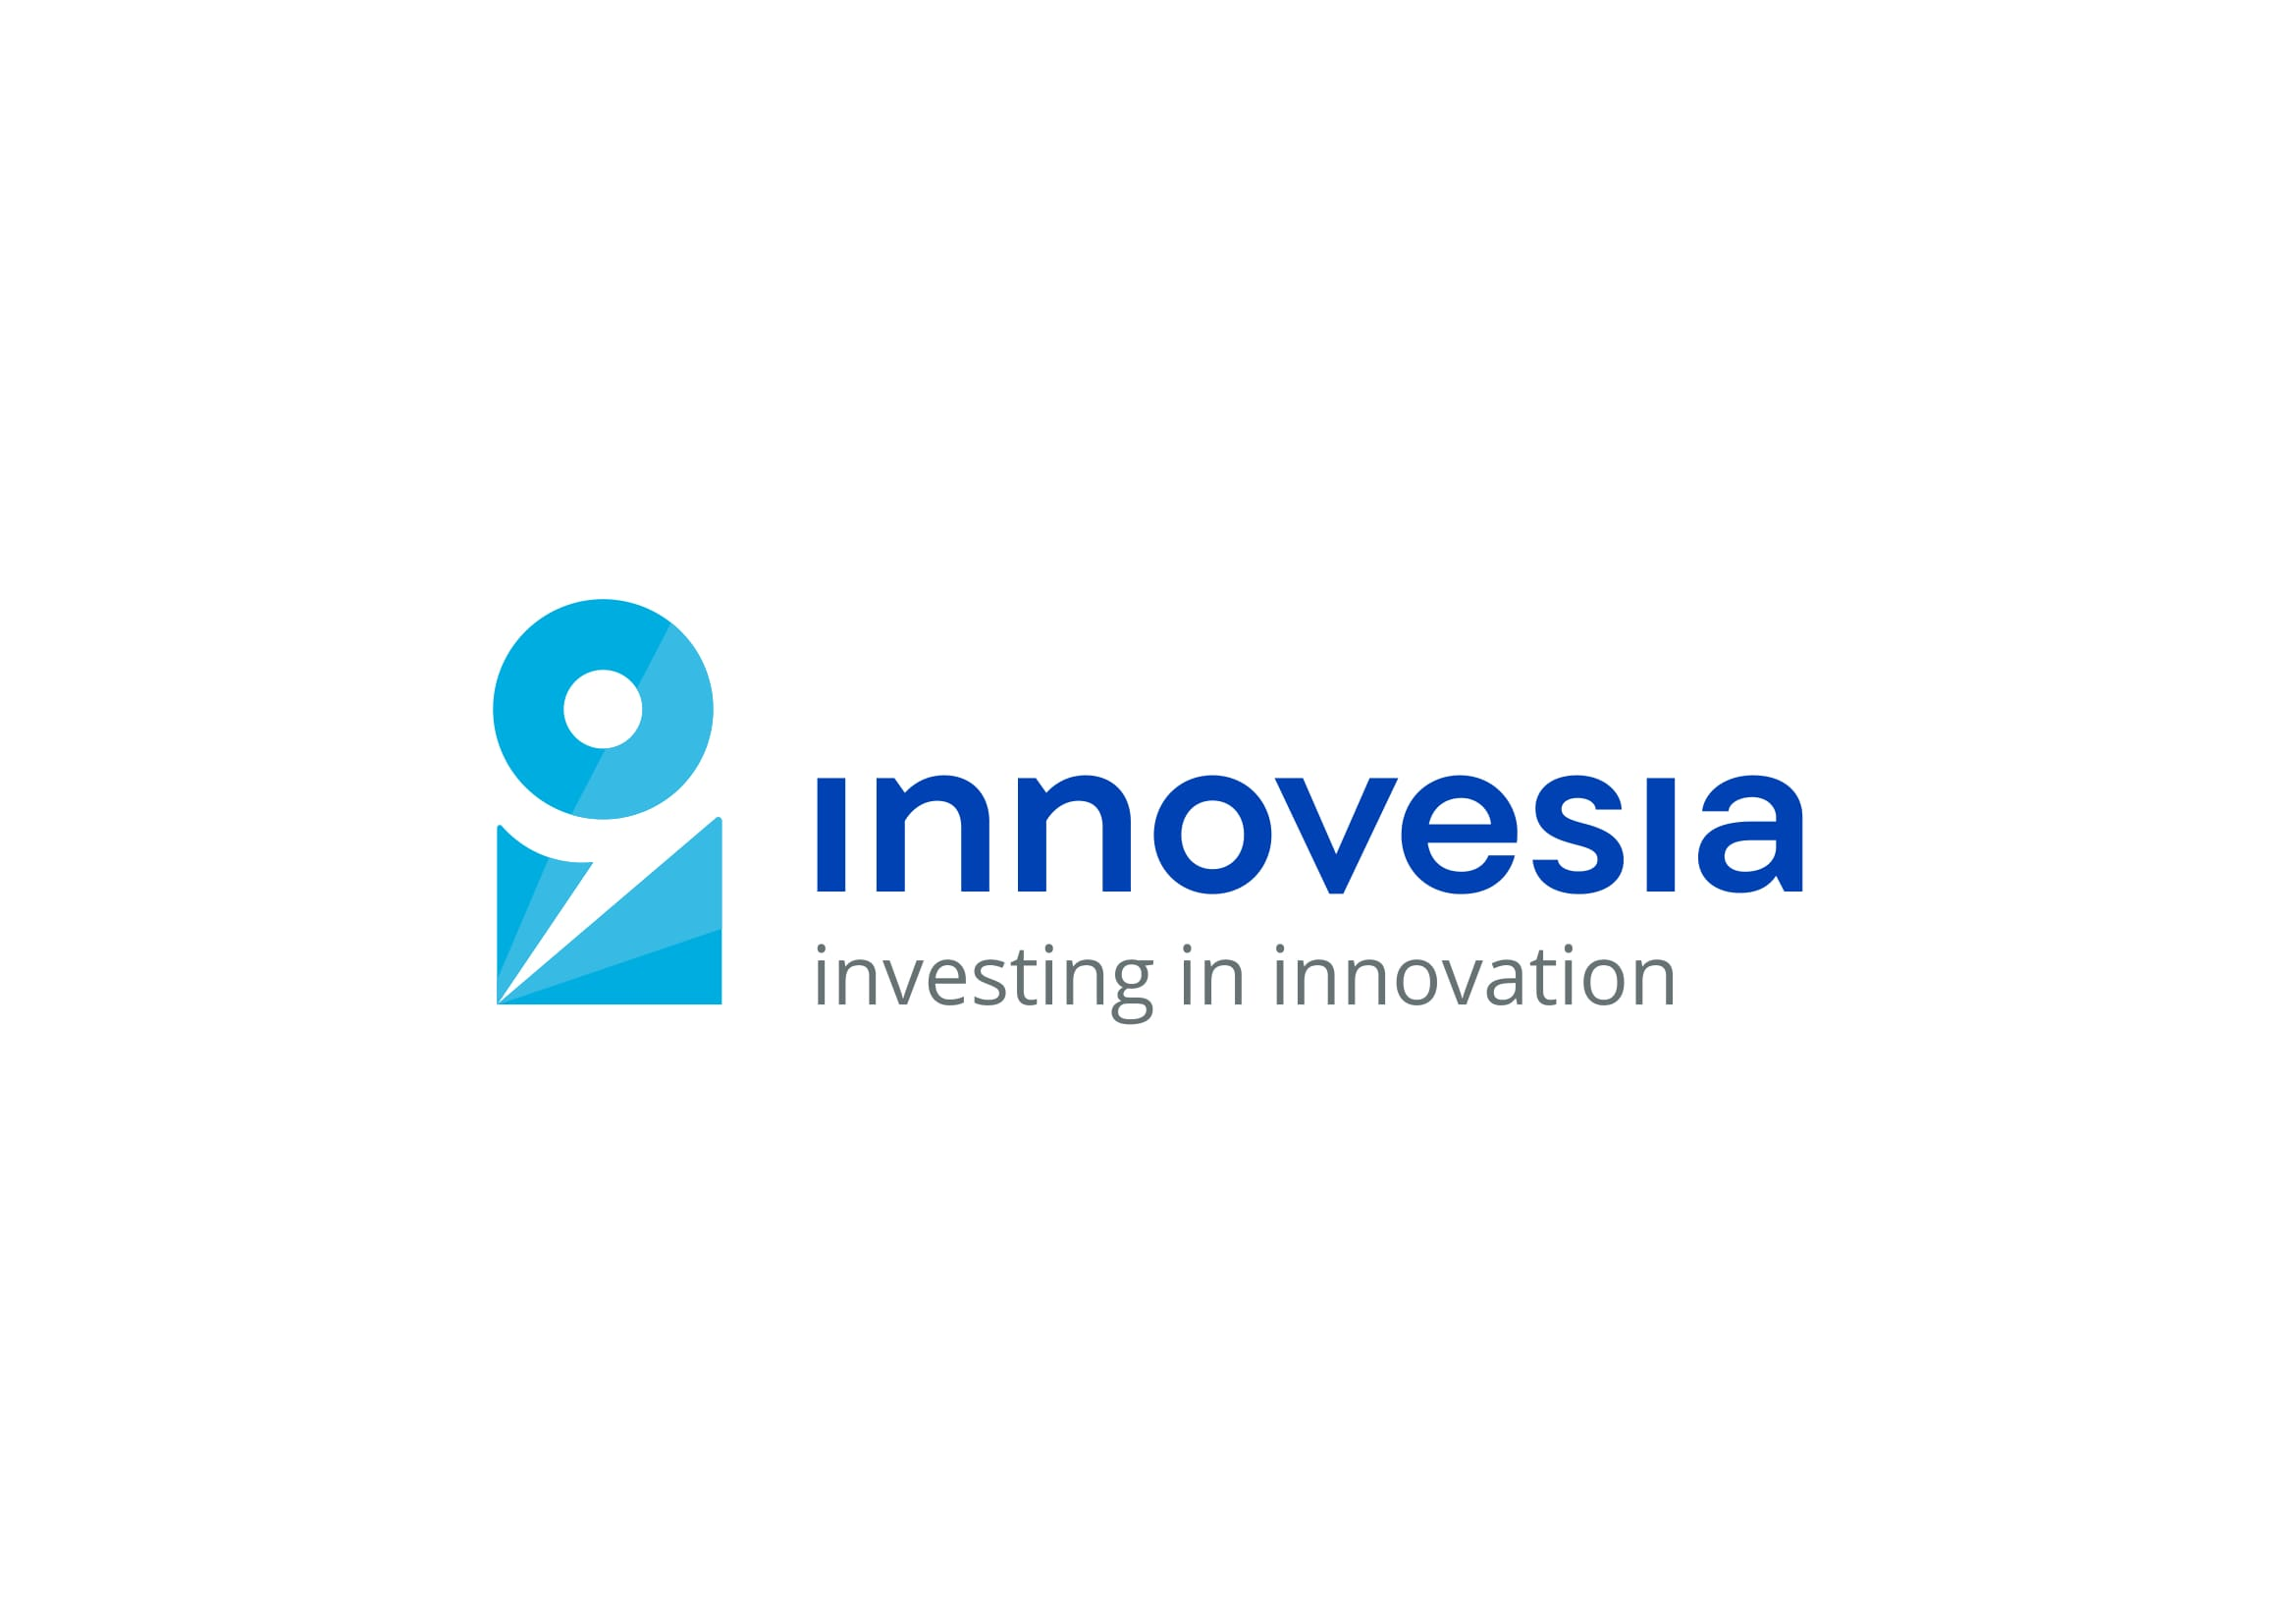 INNOVESIA - INVESTING IN INNOVATION